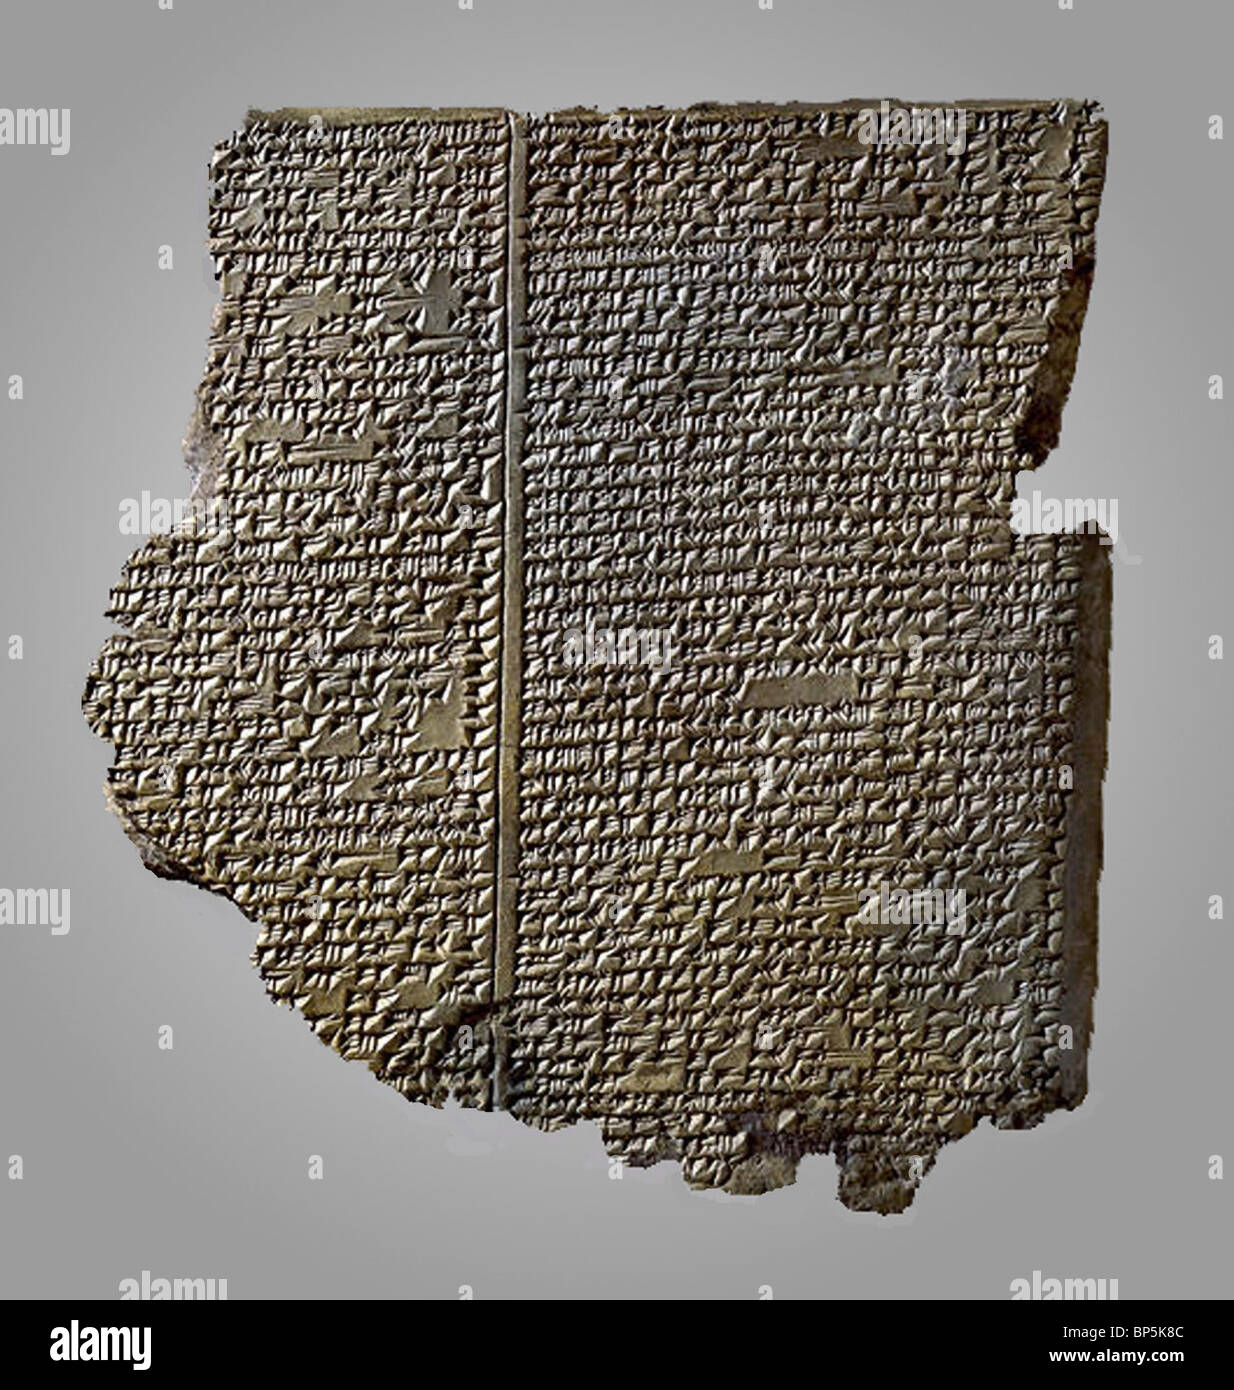 4883. THE BABYLONIAN EPIC OF GILGAMESH DATING FROM THE 15TH. C. BC, DESCRIBIBG A BIG FLOOD WHICH OCCURRED AT THAT - Stock Image